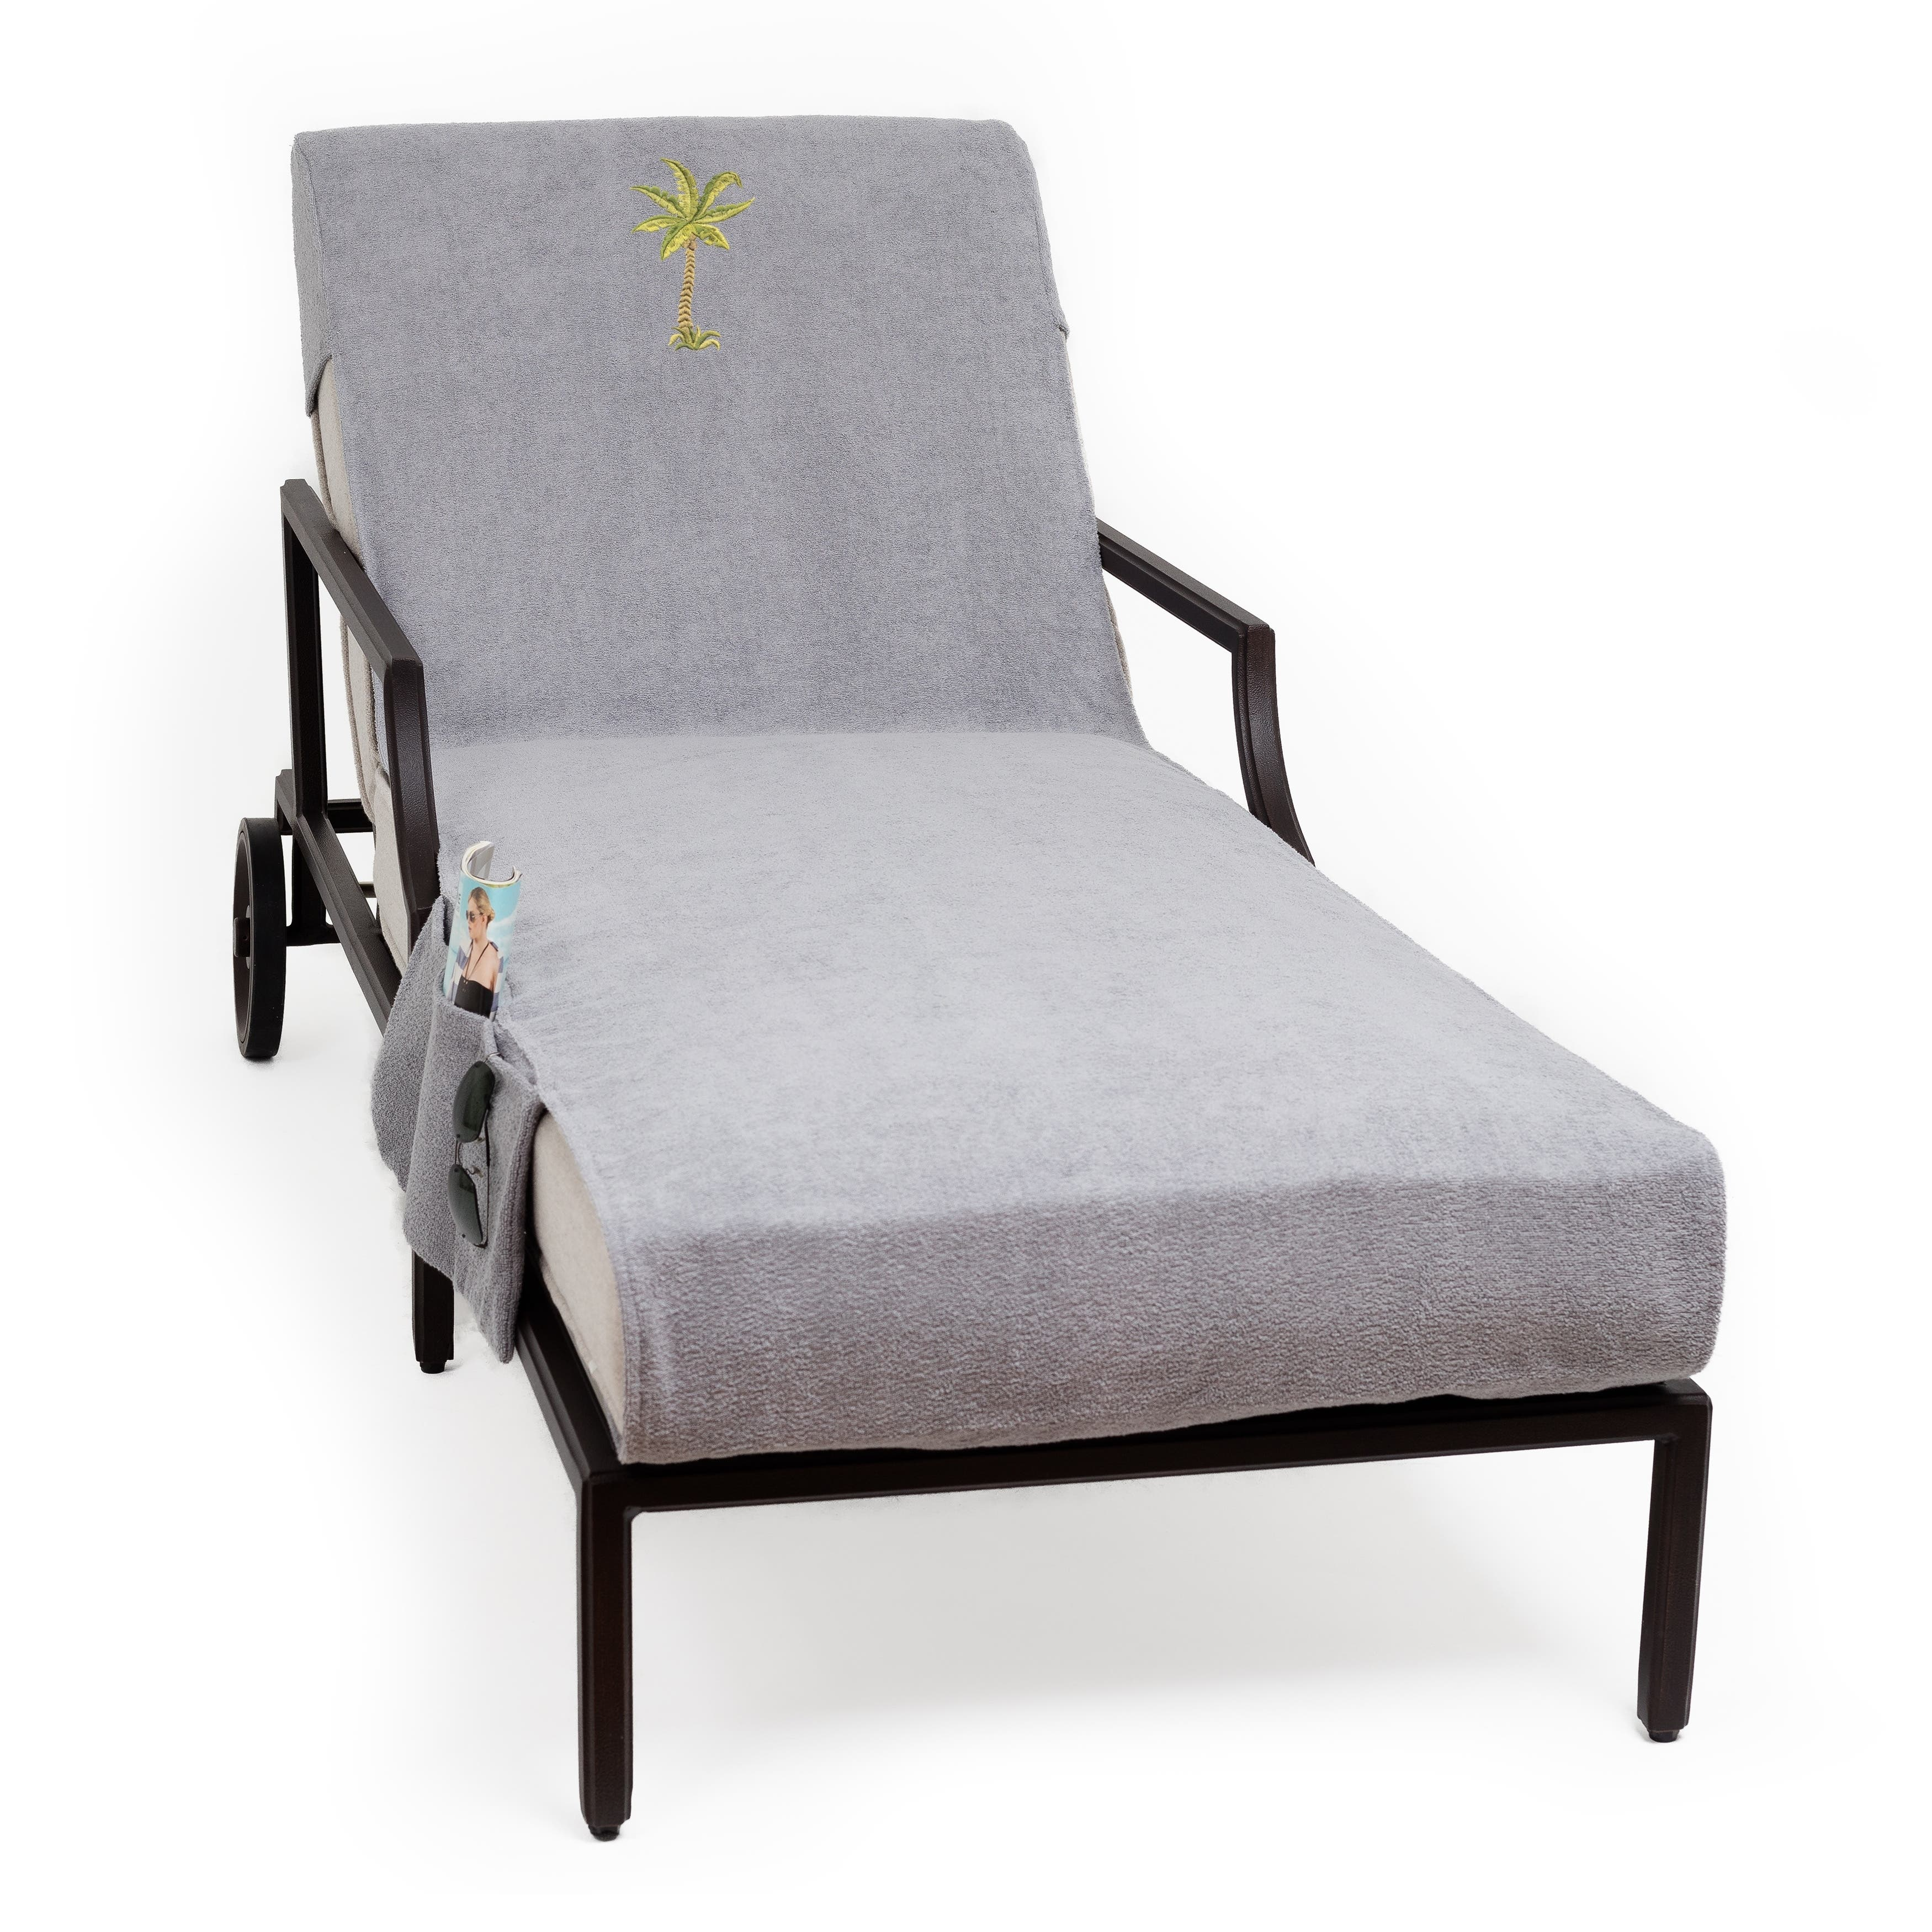 Personalized Chaise Lounge Towels: Buy Bath Towels Online At Overstock